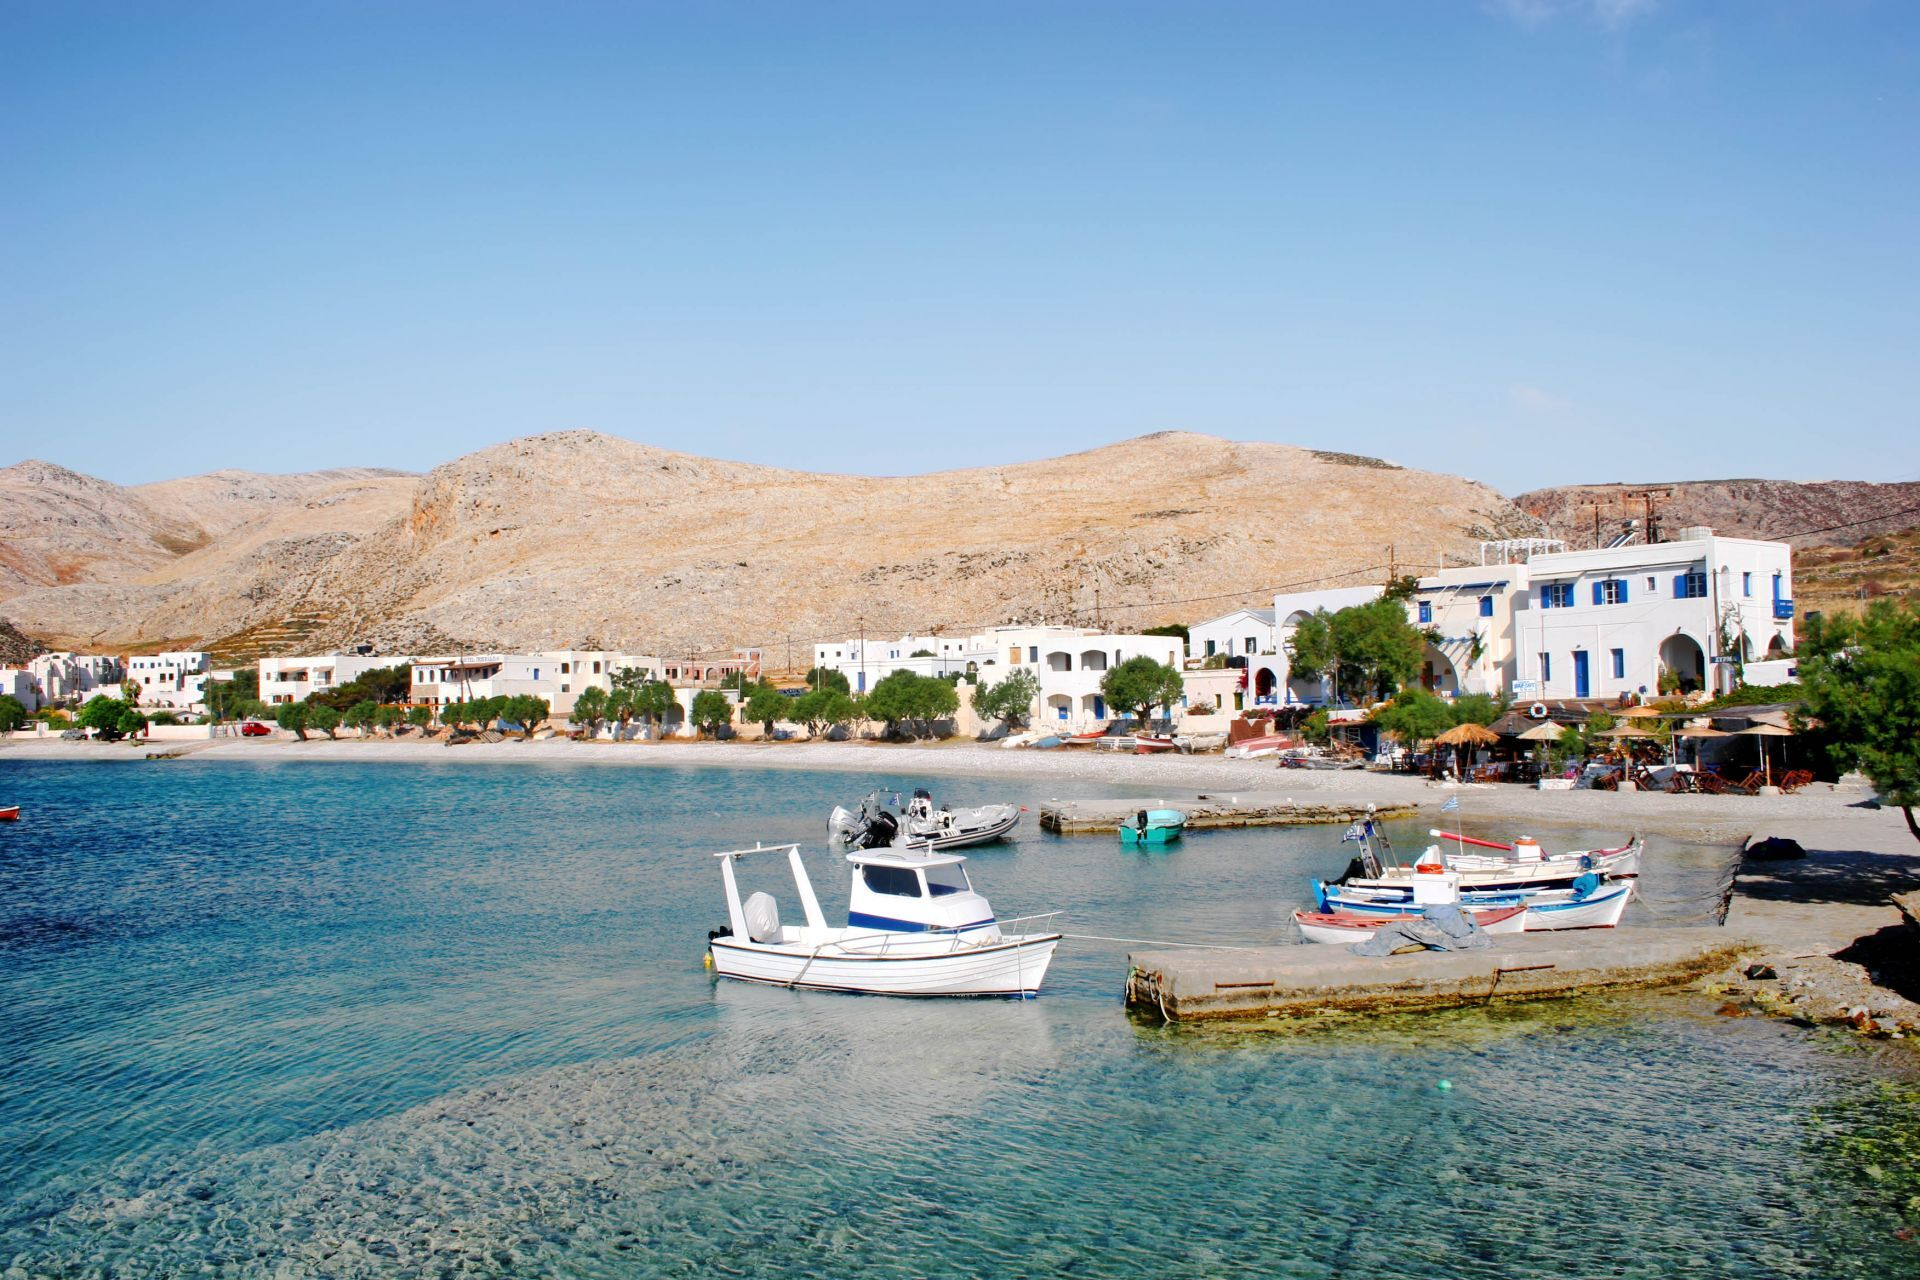 Accommodation and hotels in Folegandros